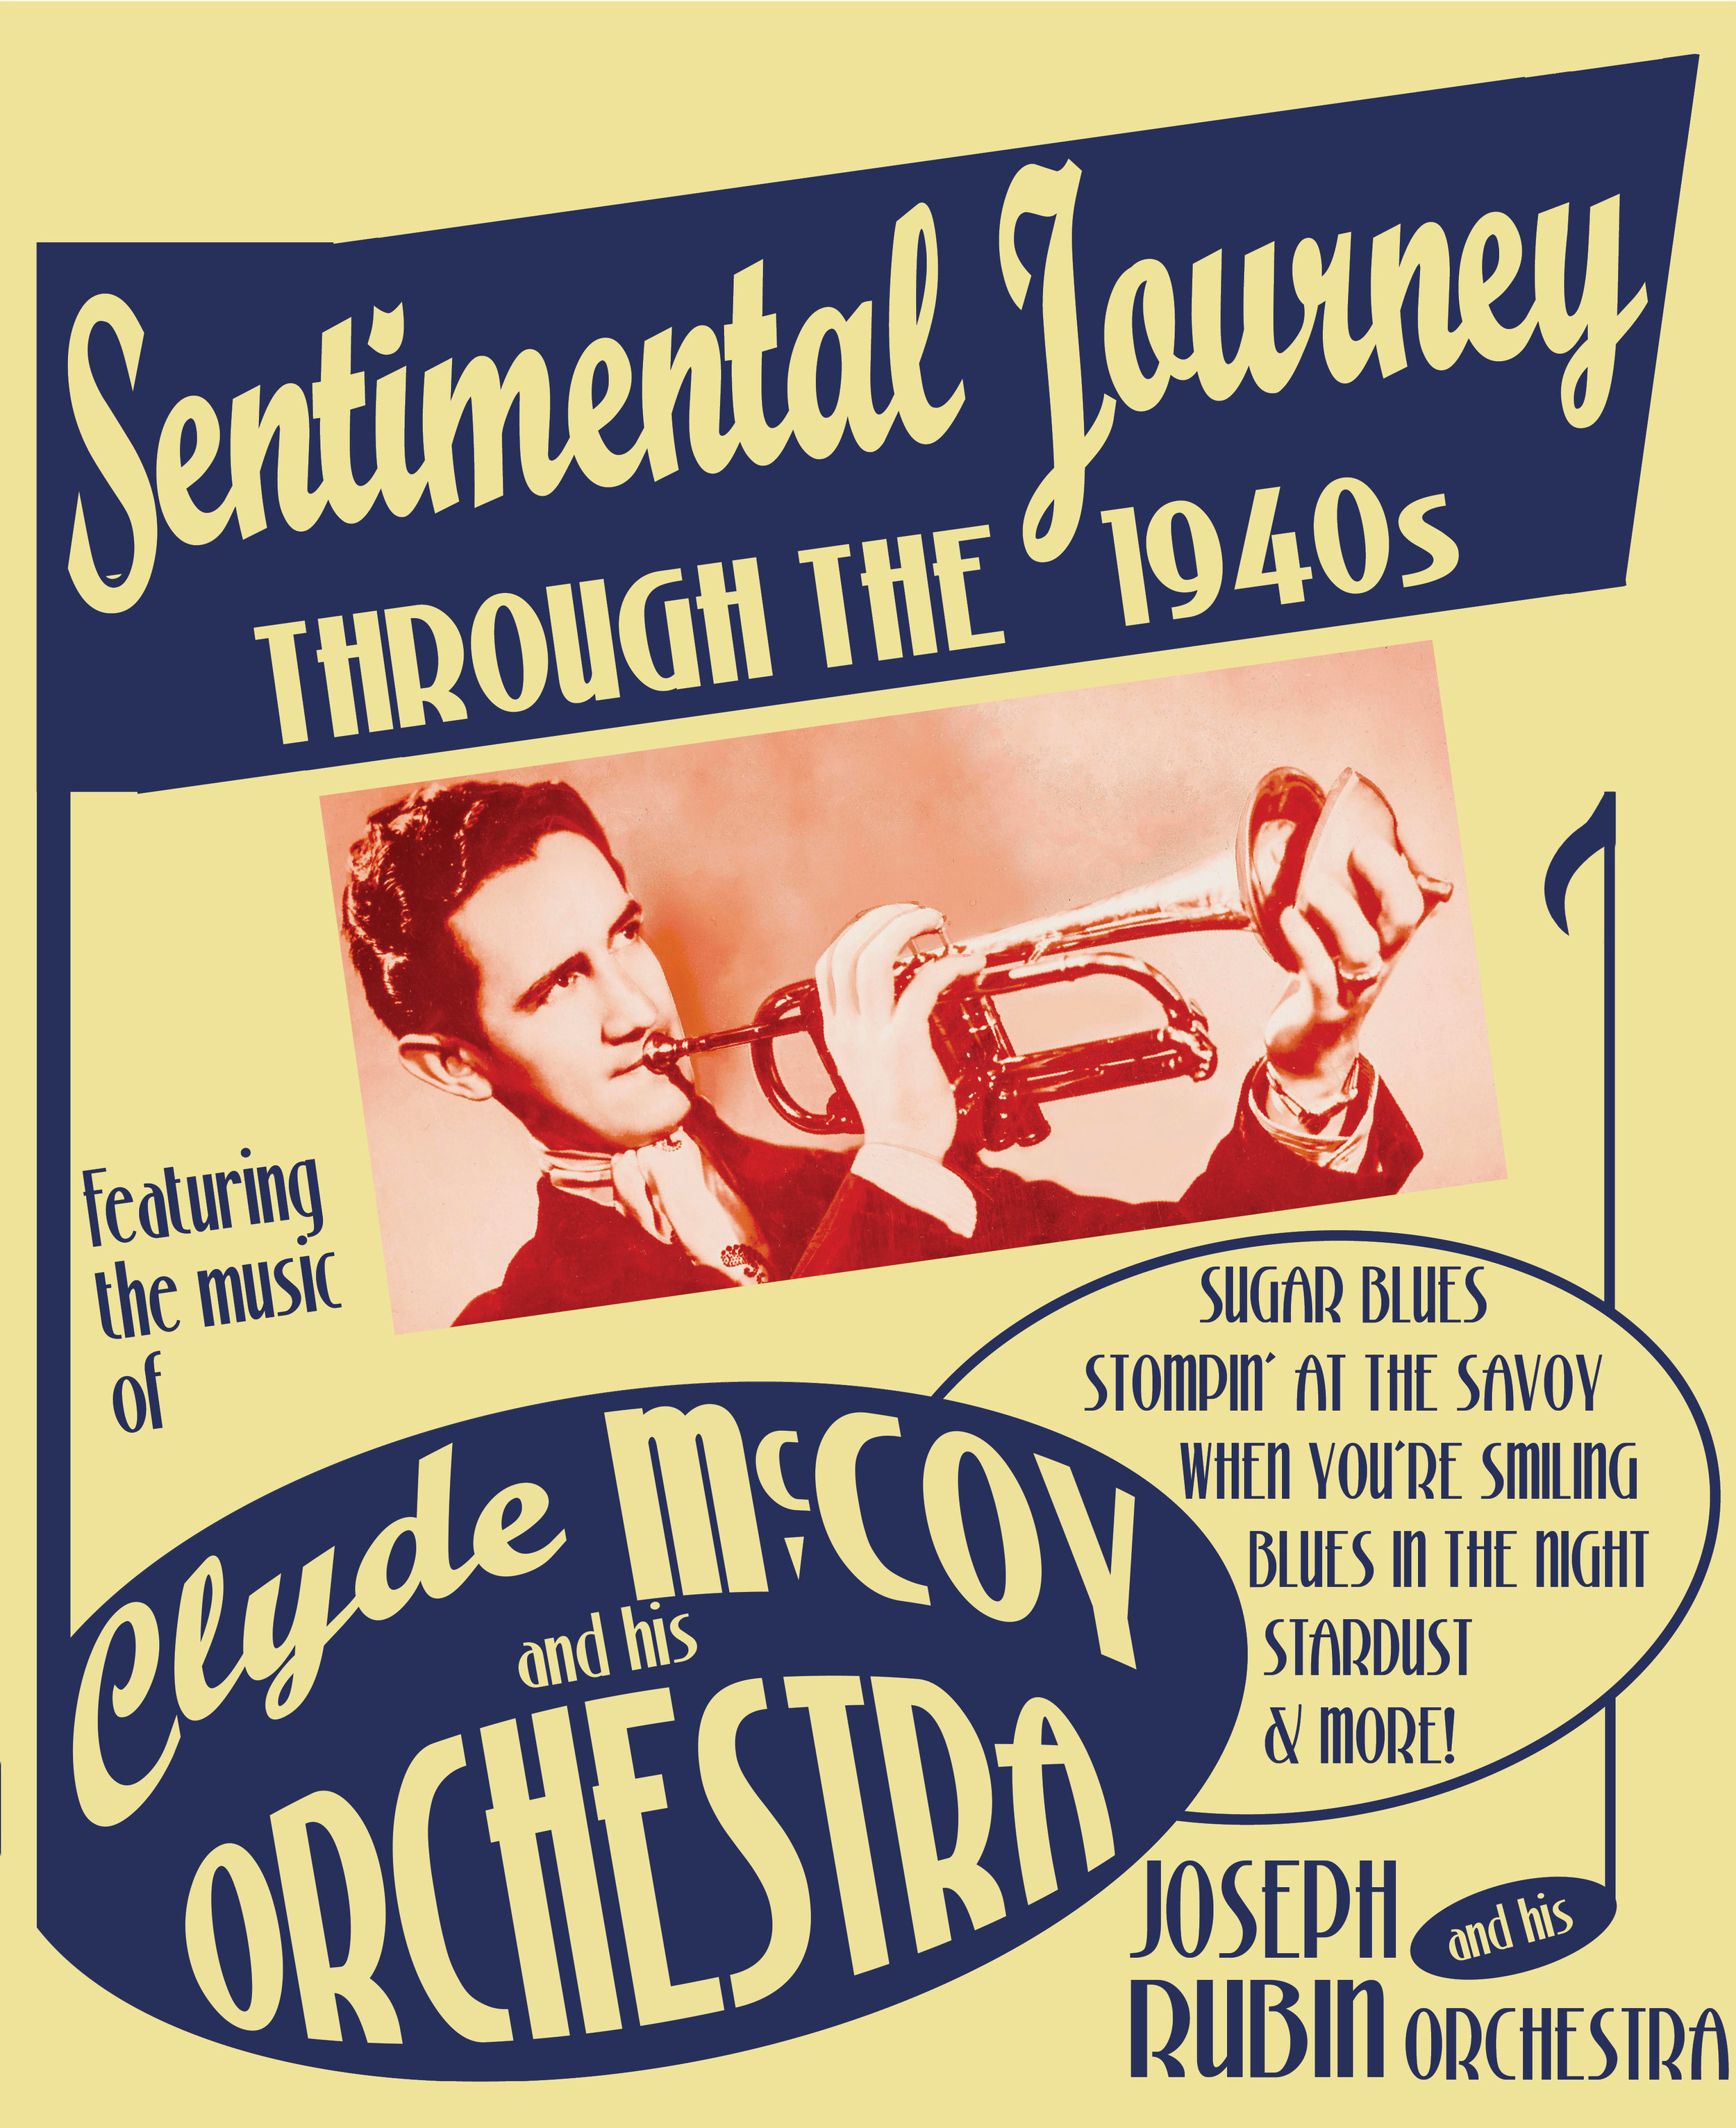 Sentimental Journey Poster no logo.jpg